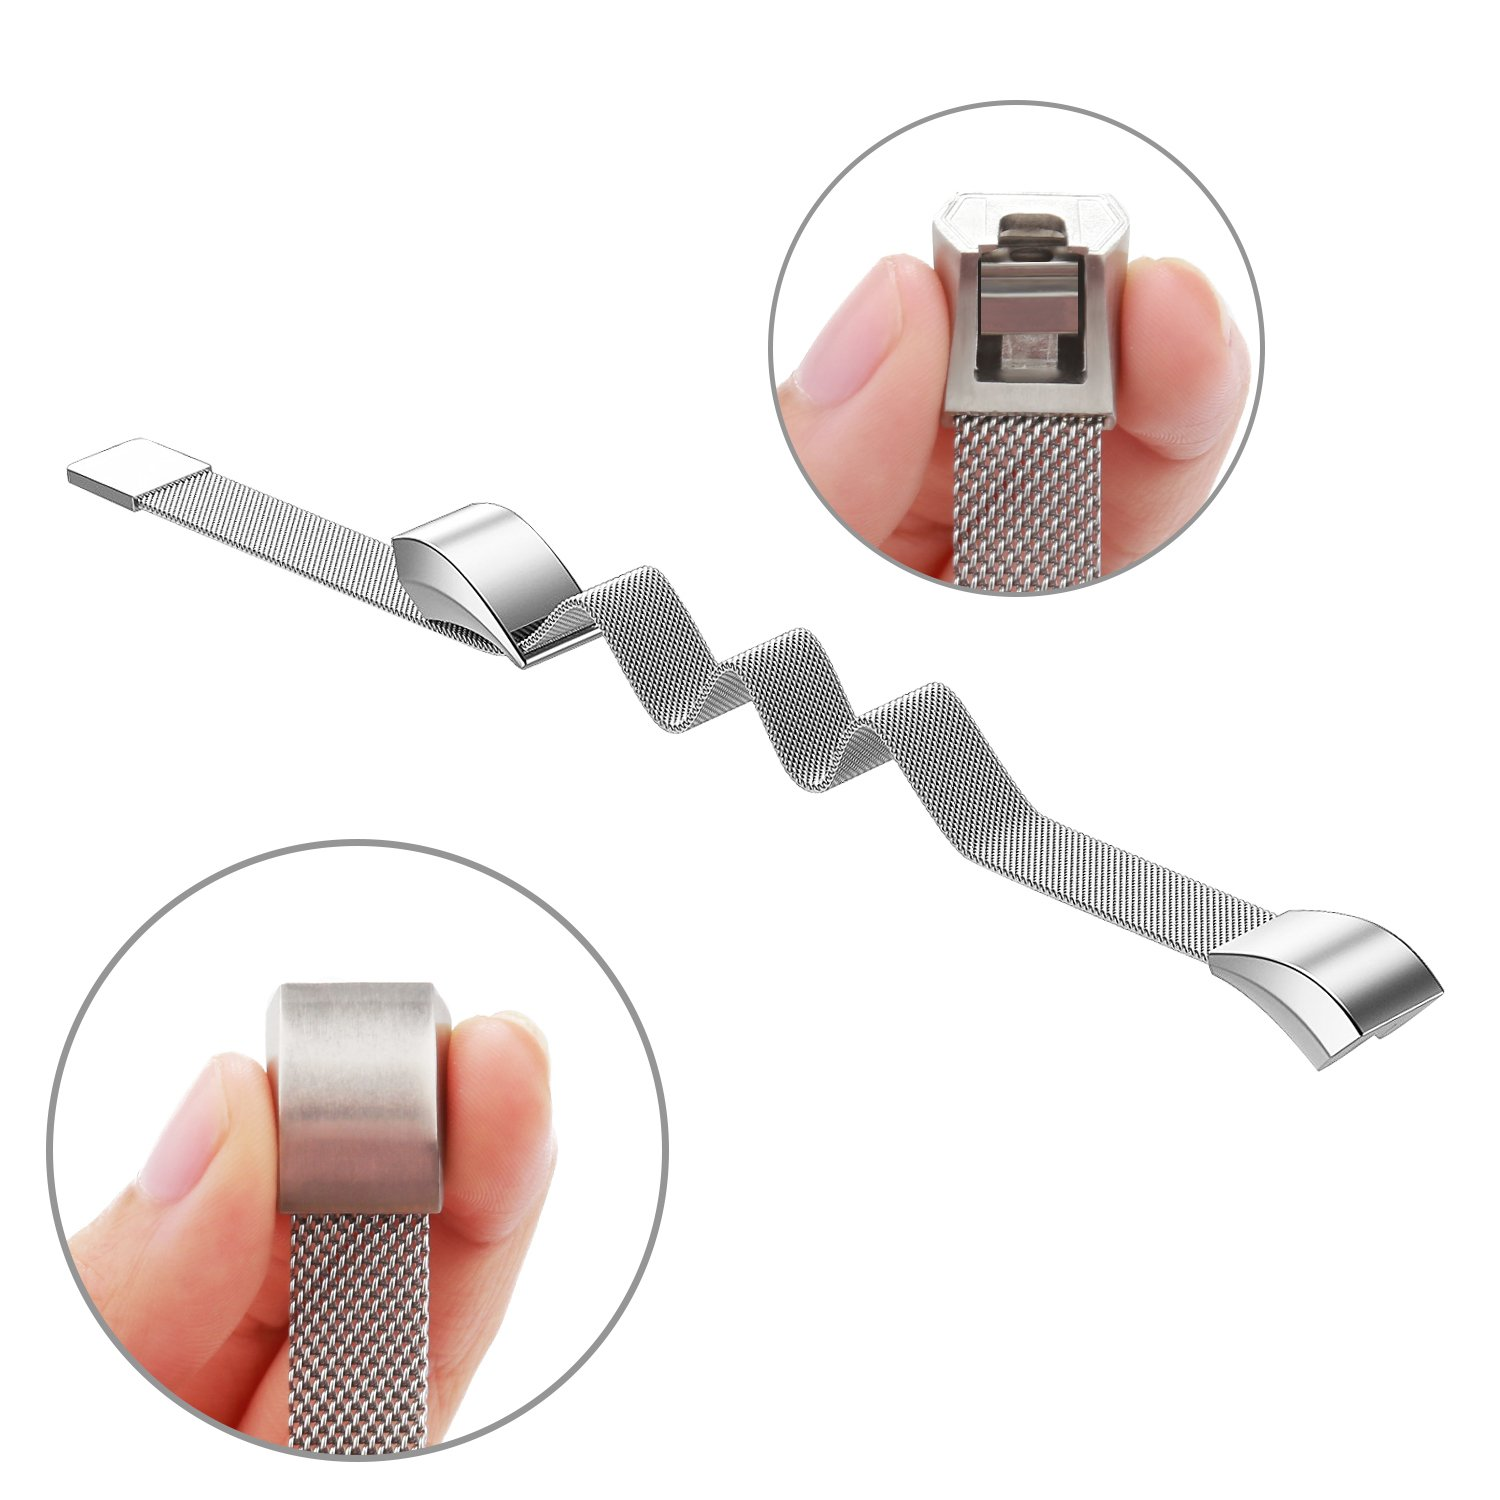 Vancle Band Compatible with Fitbit Alta HR Bands Adjustable Metal Wristband Band Strap with Magnetic Closure Clasp for Fitbit Alta HR 2017// Fitbit Alta 2016 Small Large Size No Tracker